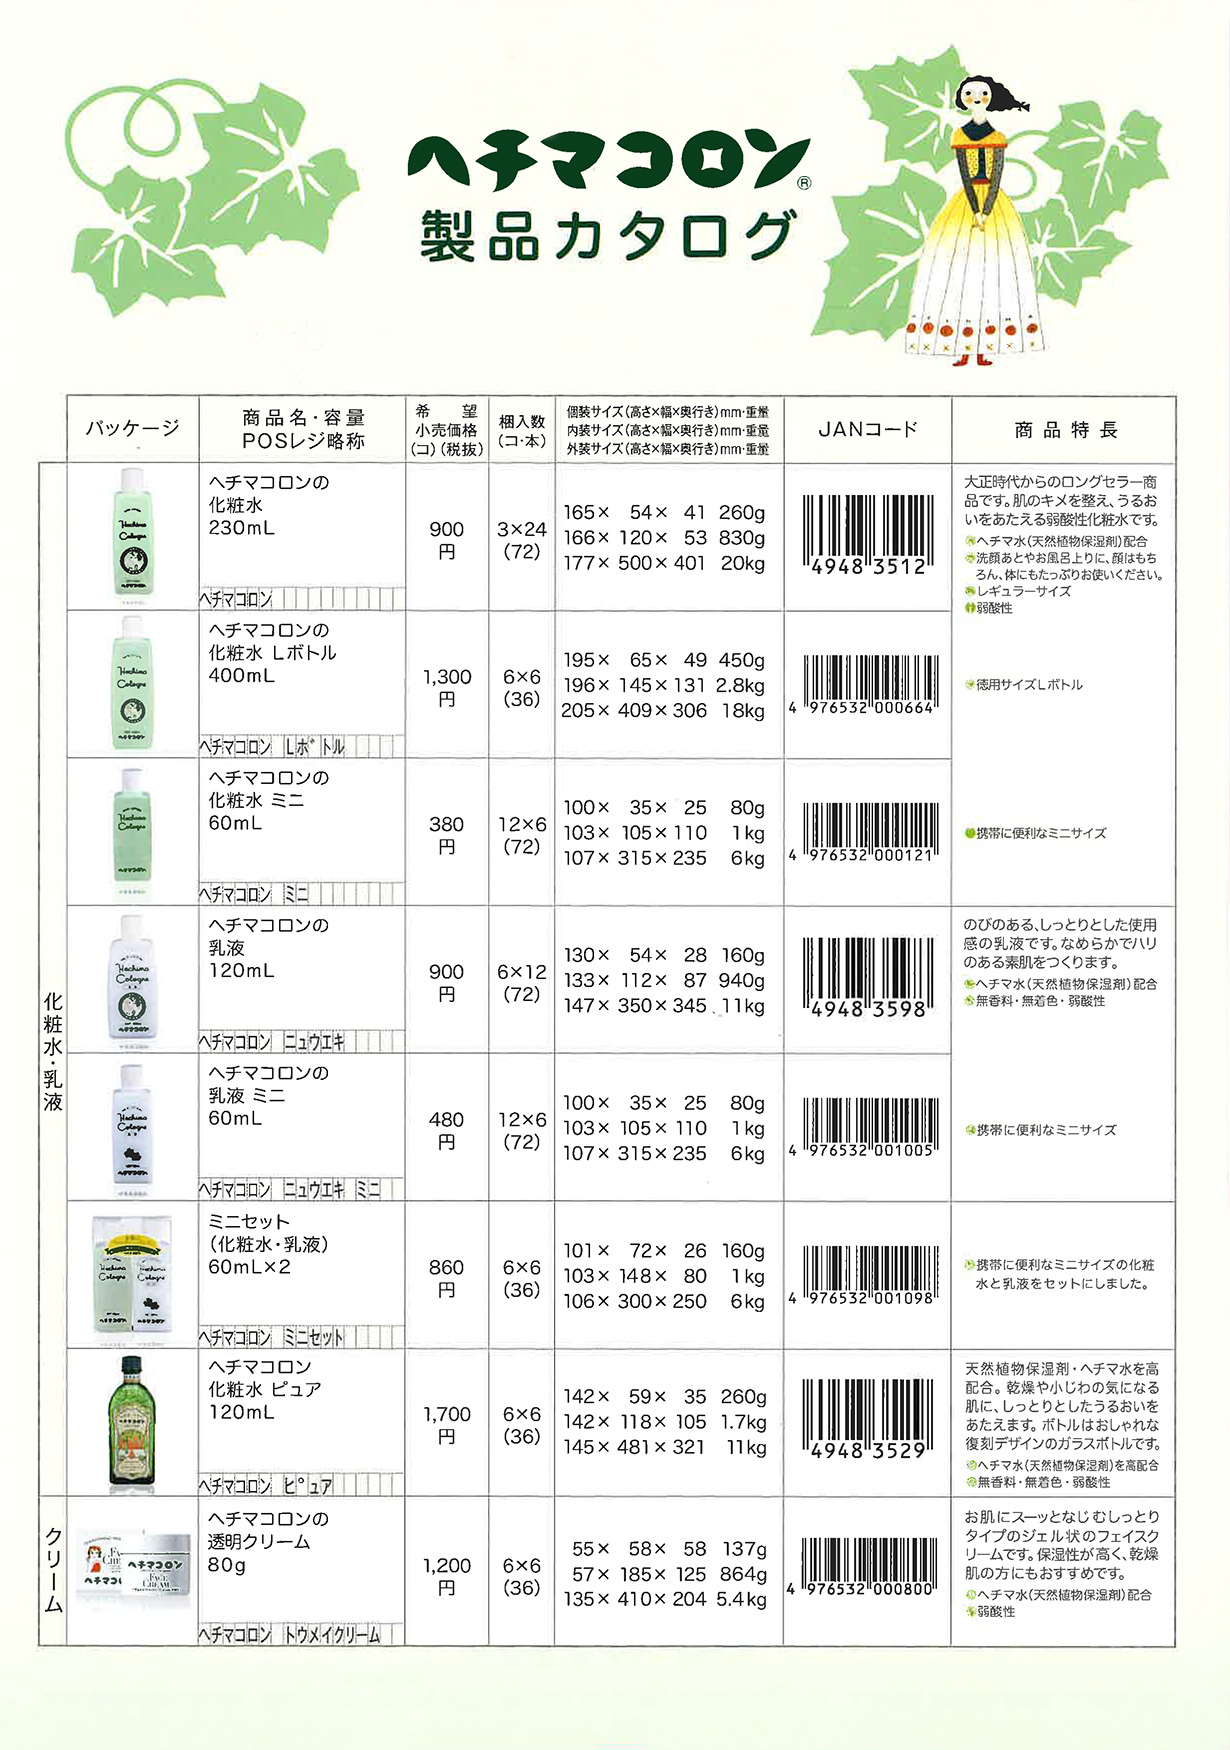 Hechima Cologne® item List (1)